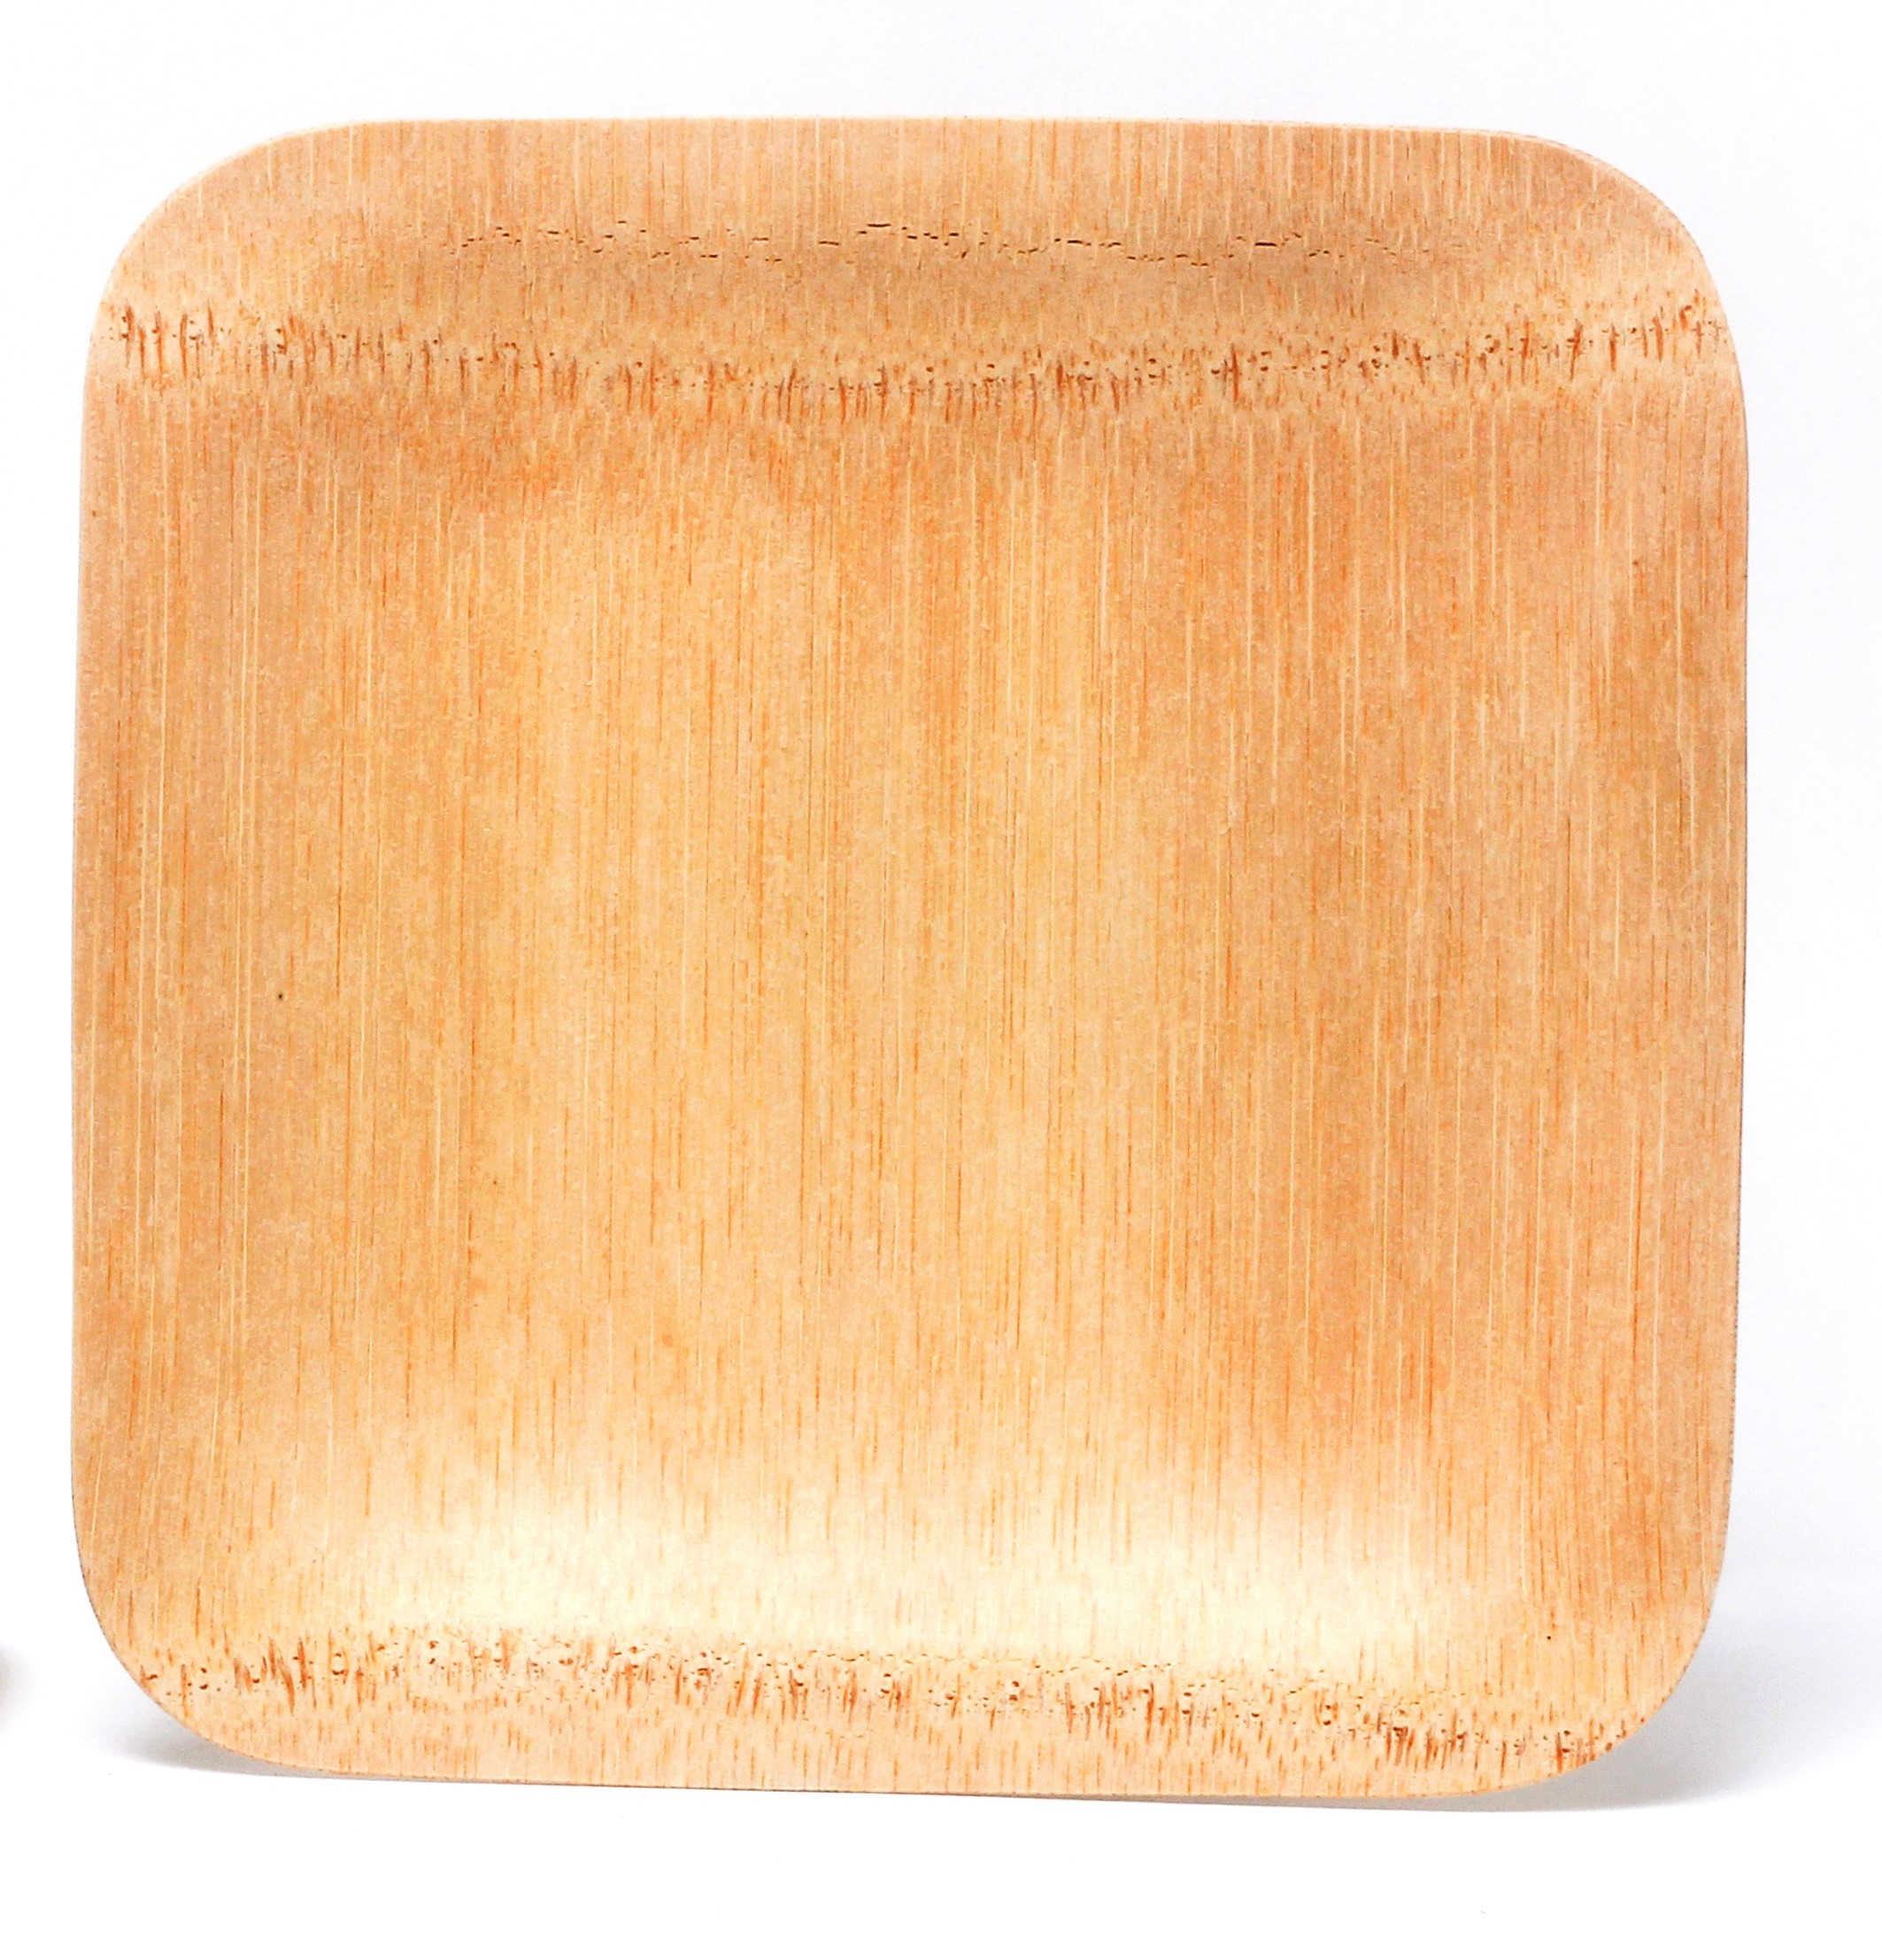 Dazzling bamboo plates with Core bamboo plates for serveware ideas